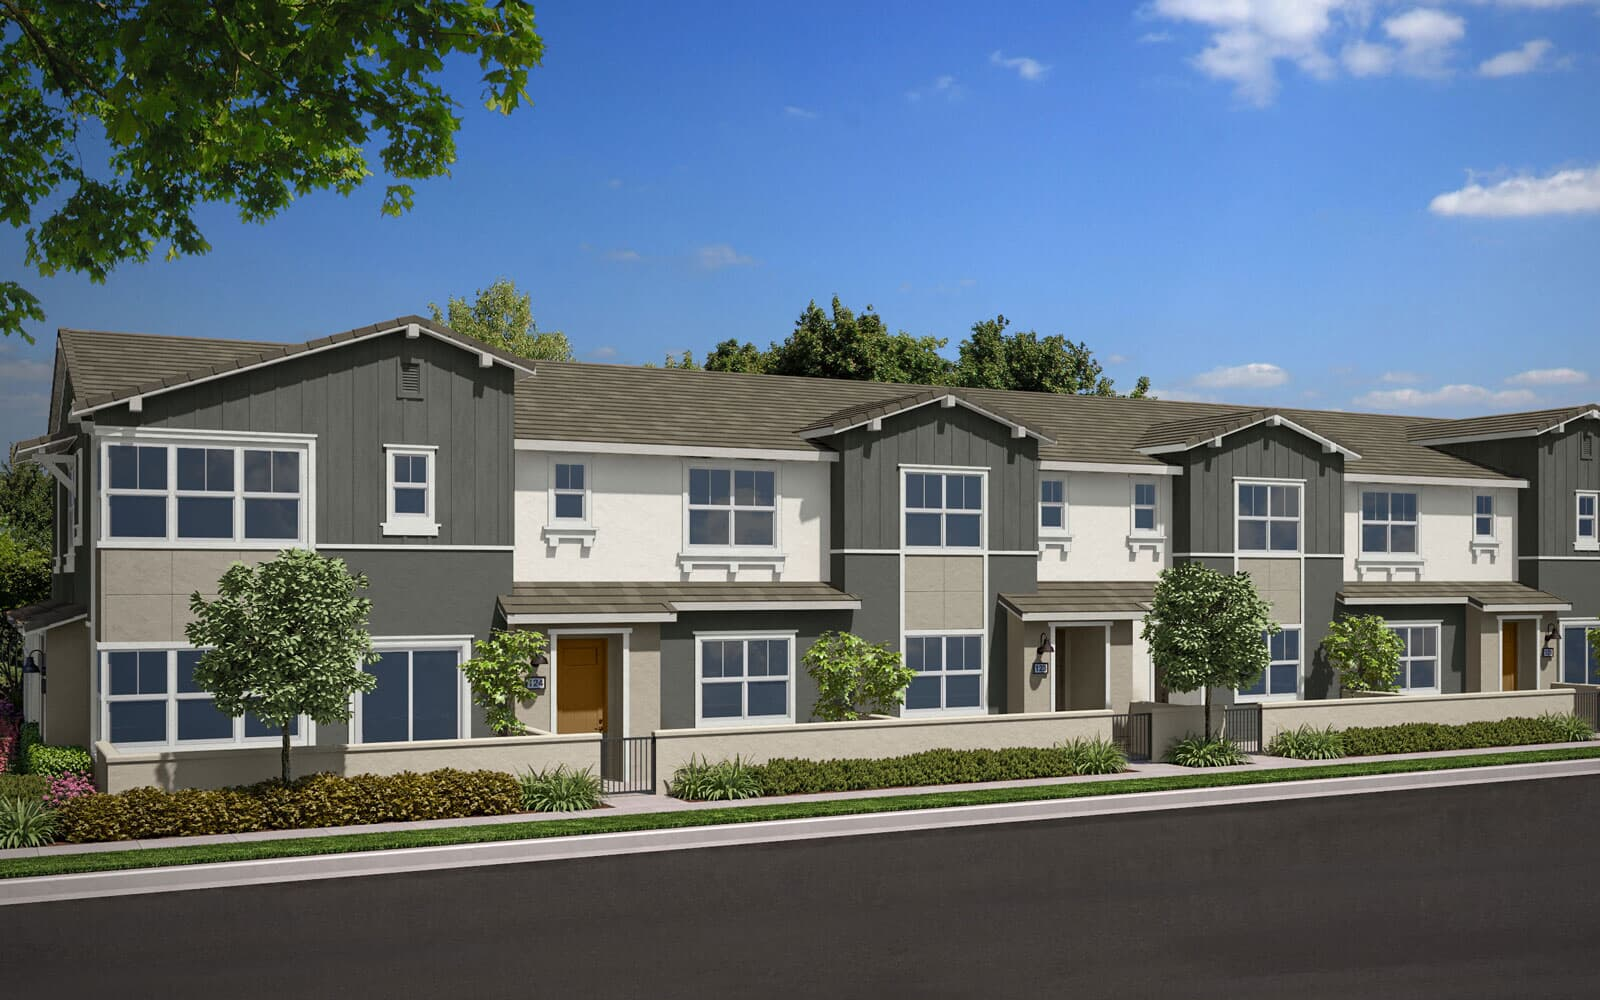 Exterior Rendering A Scheme 1 | Indigo Canvas Park at New Haven in Ontario Ranch, CA | Brookfield Residential